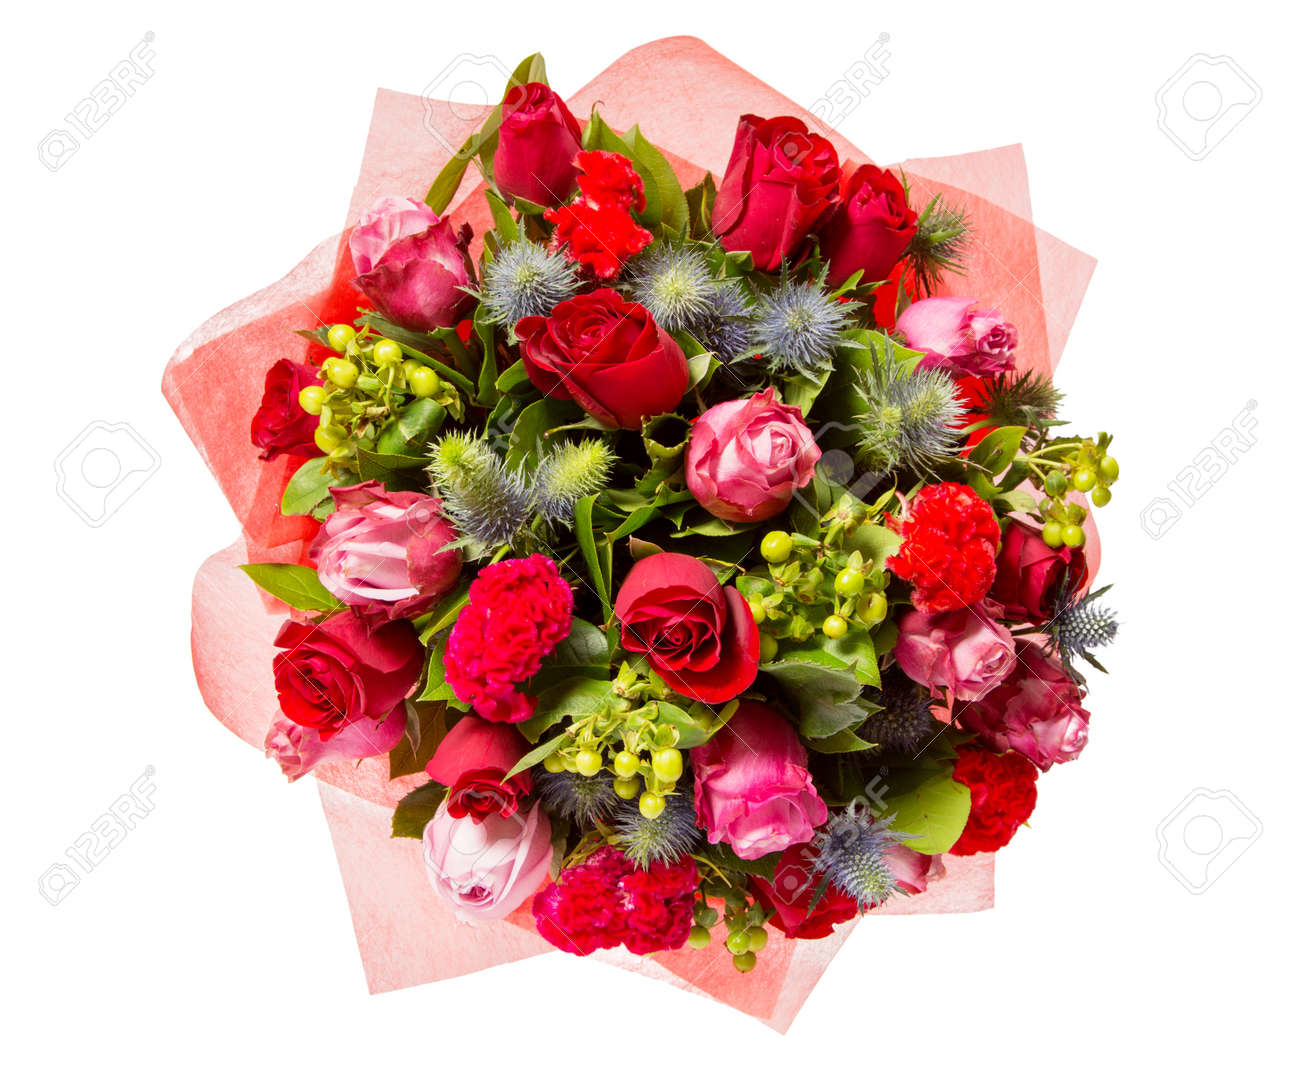 Bunch of flowers stock photos royalty free bunch of flowers images bouquet of flowers top view isolated on white stock photo izmirmasajfo